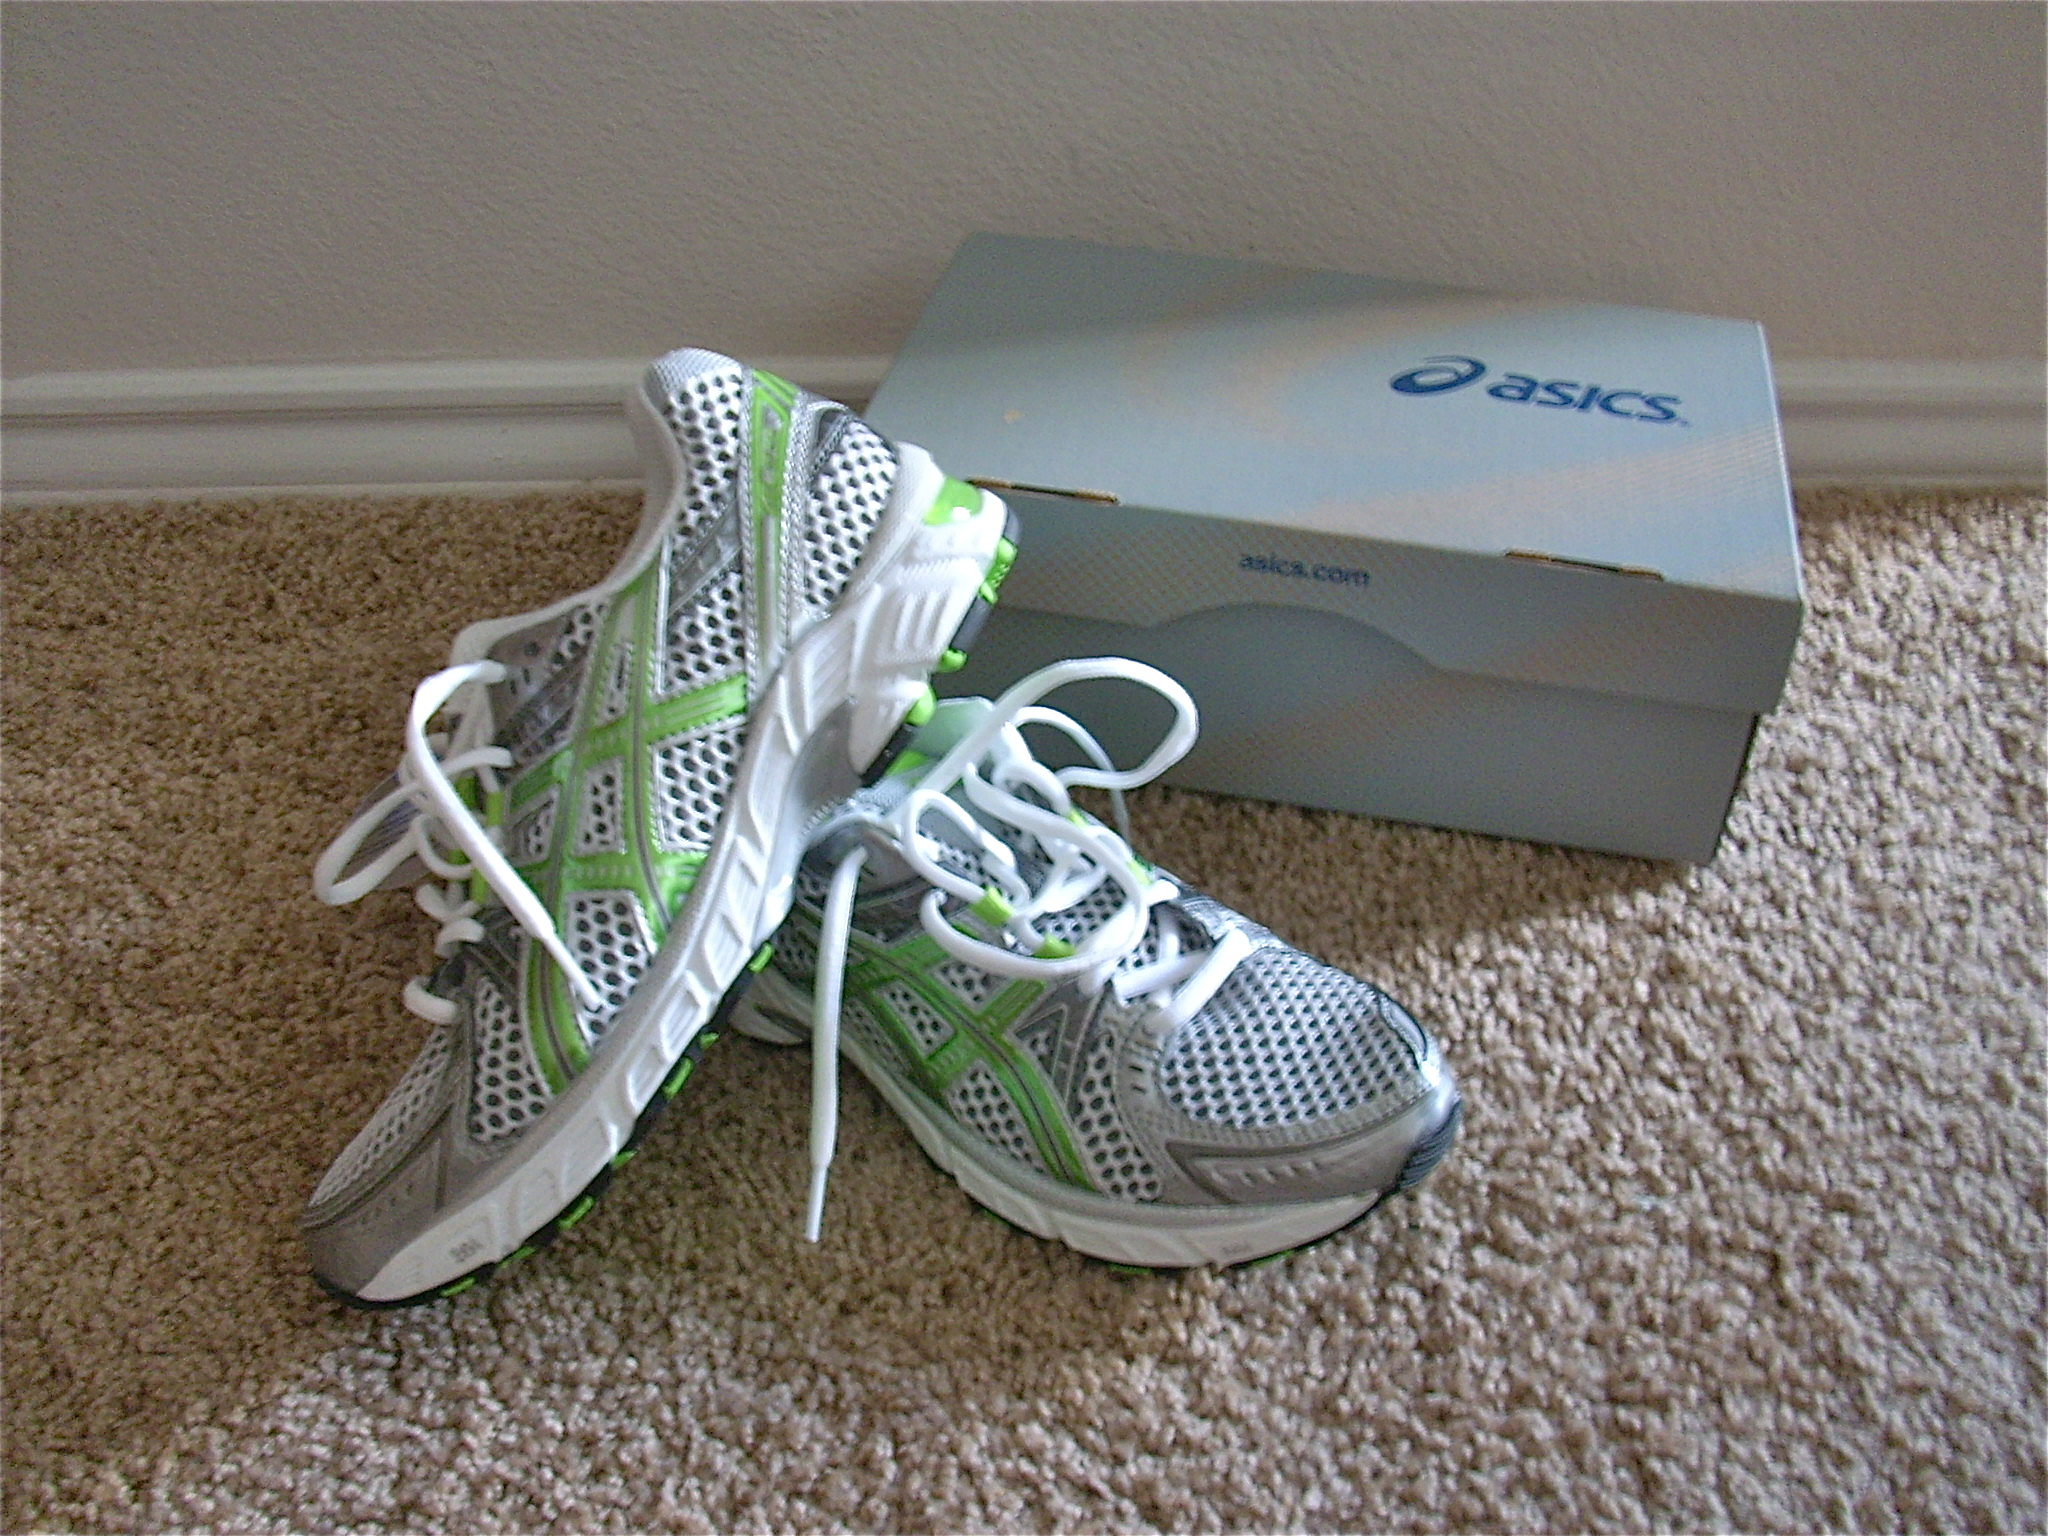 Asics Gel-1170 Shoe Review - Healthier Dishes